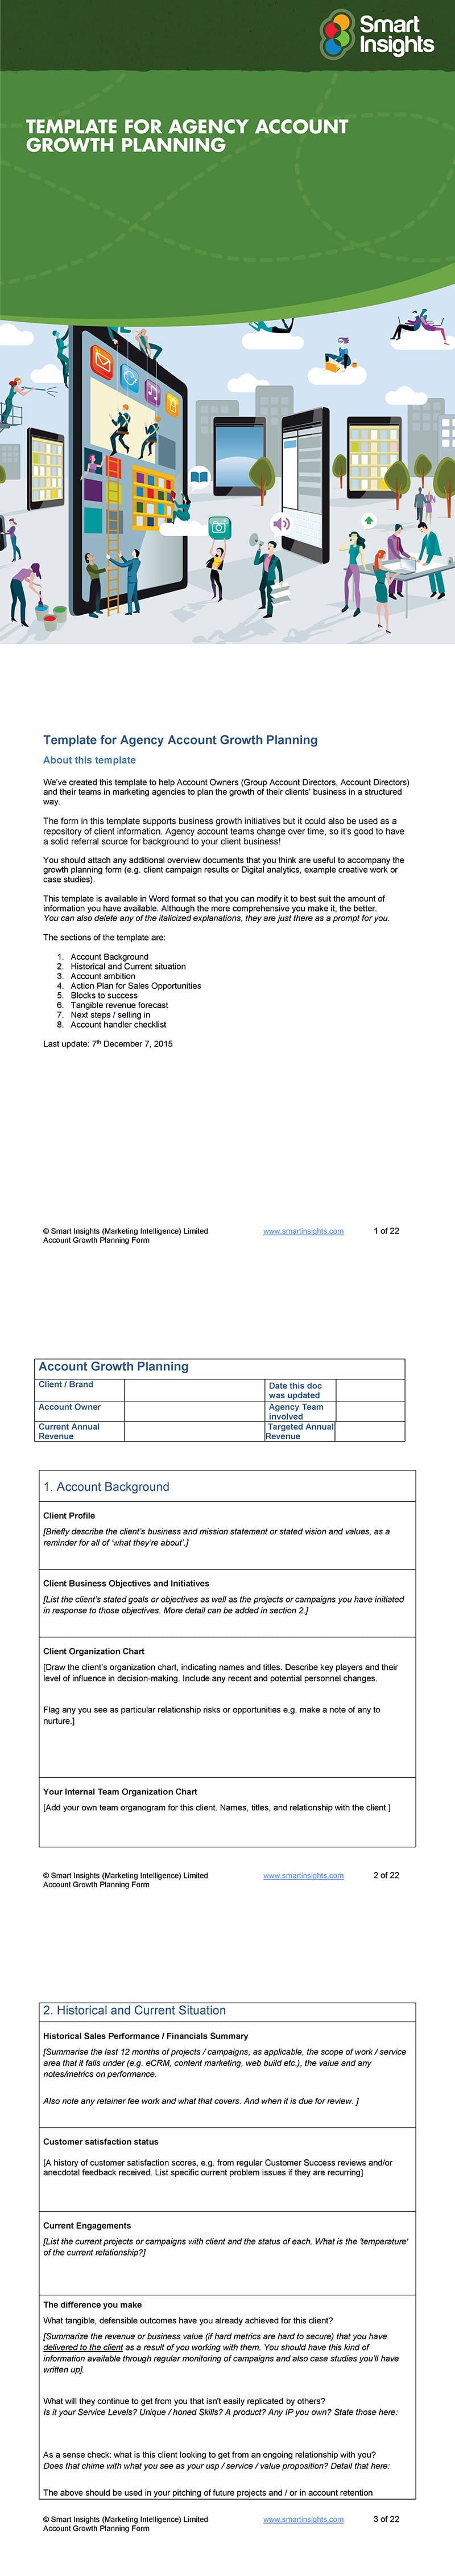 Template for Agency Account Growth Planning